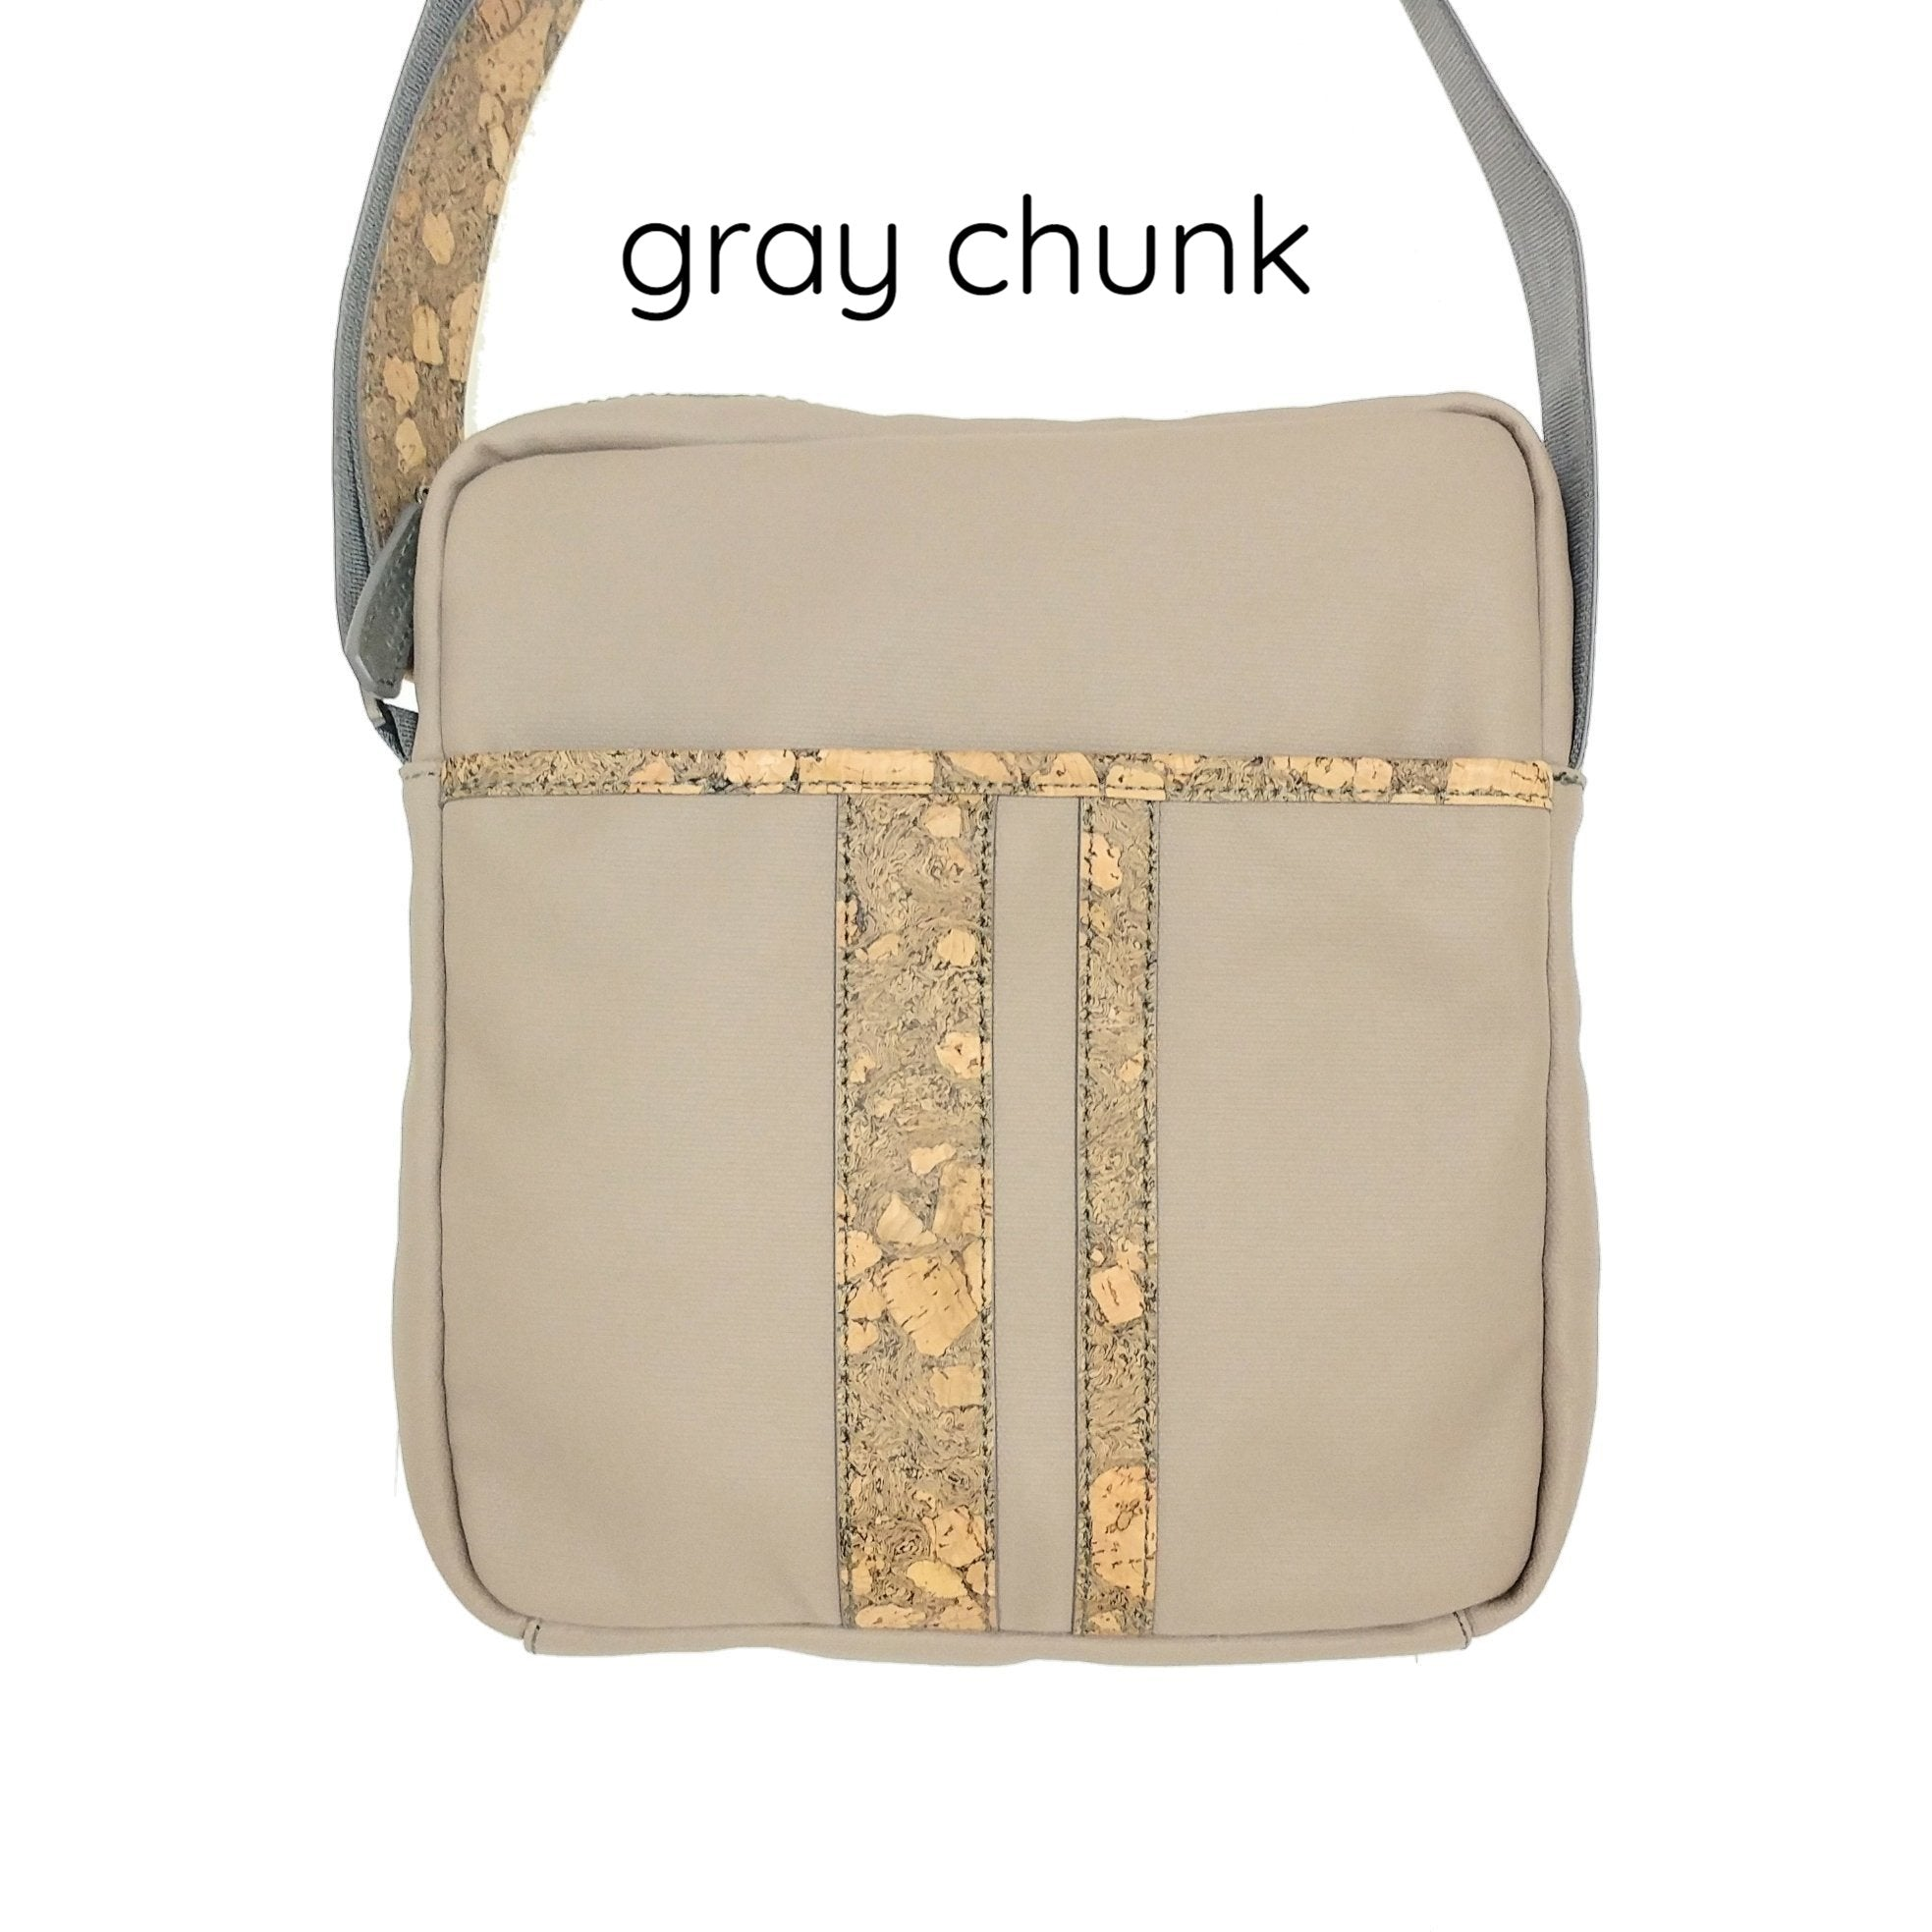 Queork cork the nelson messenger bag gray chunk